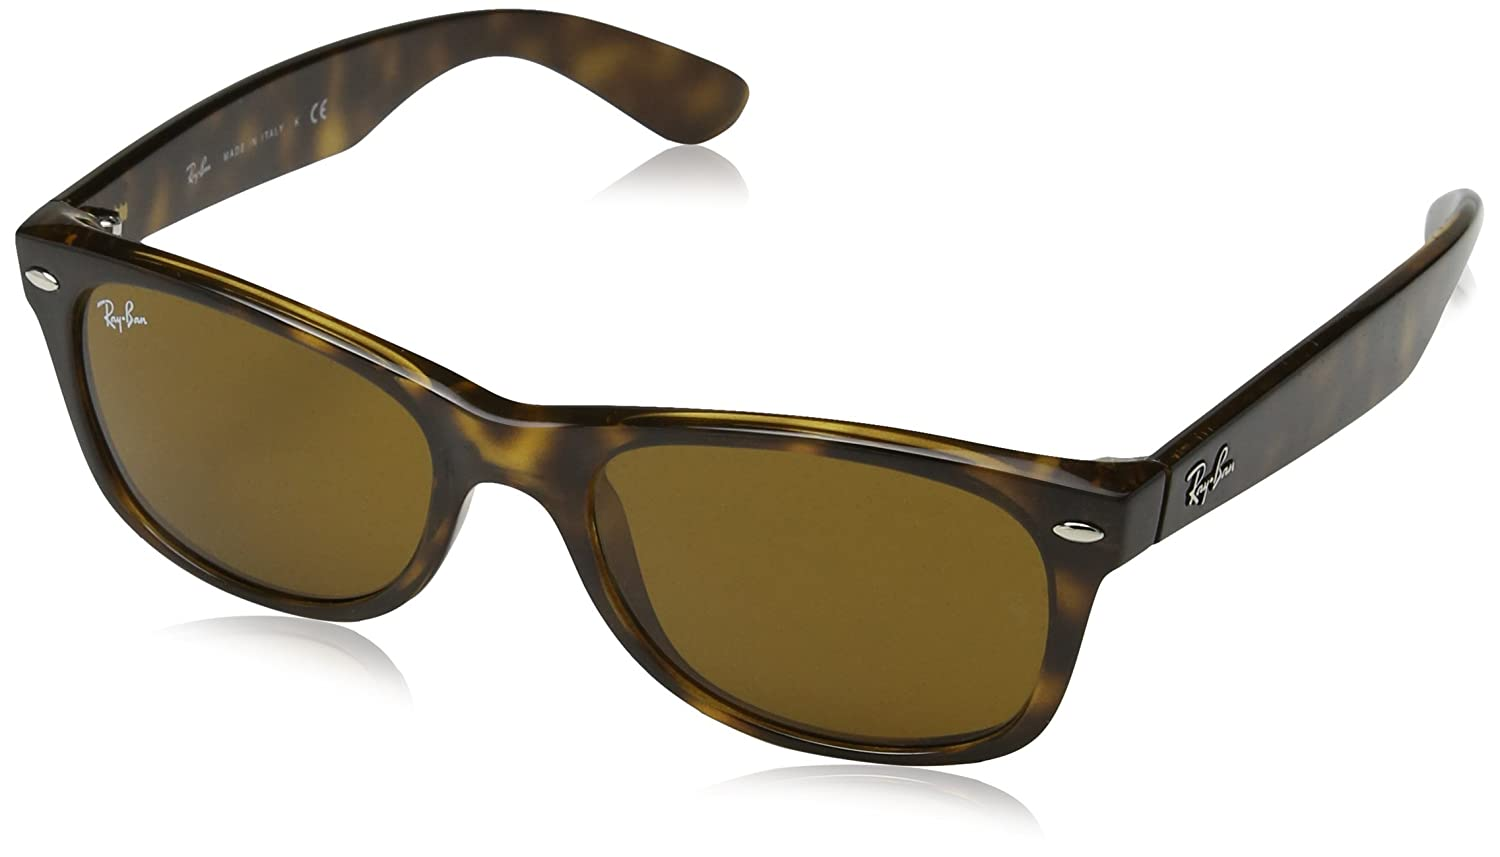 6ca7ede78e97 Ray-Ban Men s Sunglasses (RB2132 710 52 Brown)  Ray-Ban  Amazon.in   Clothing   Accessories